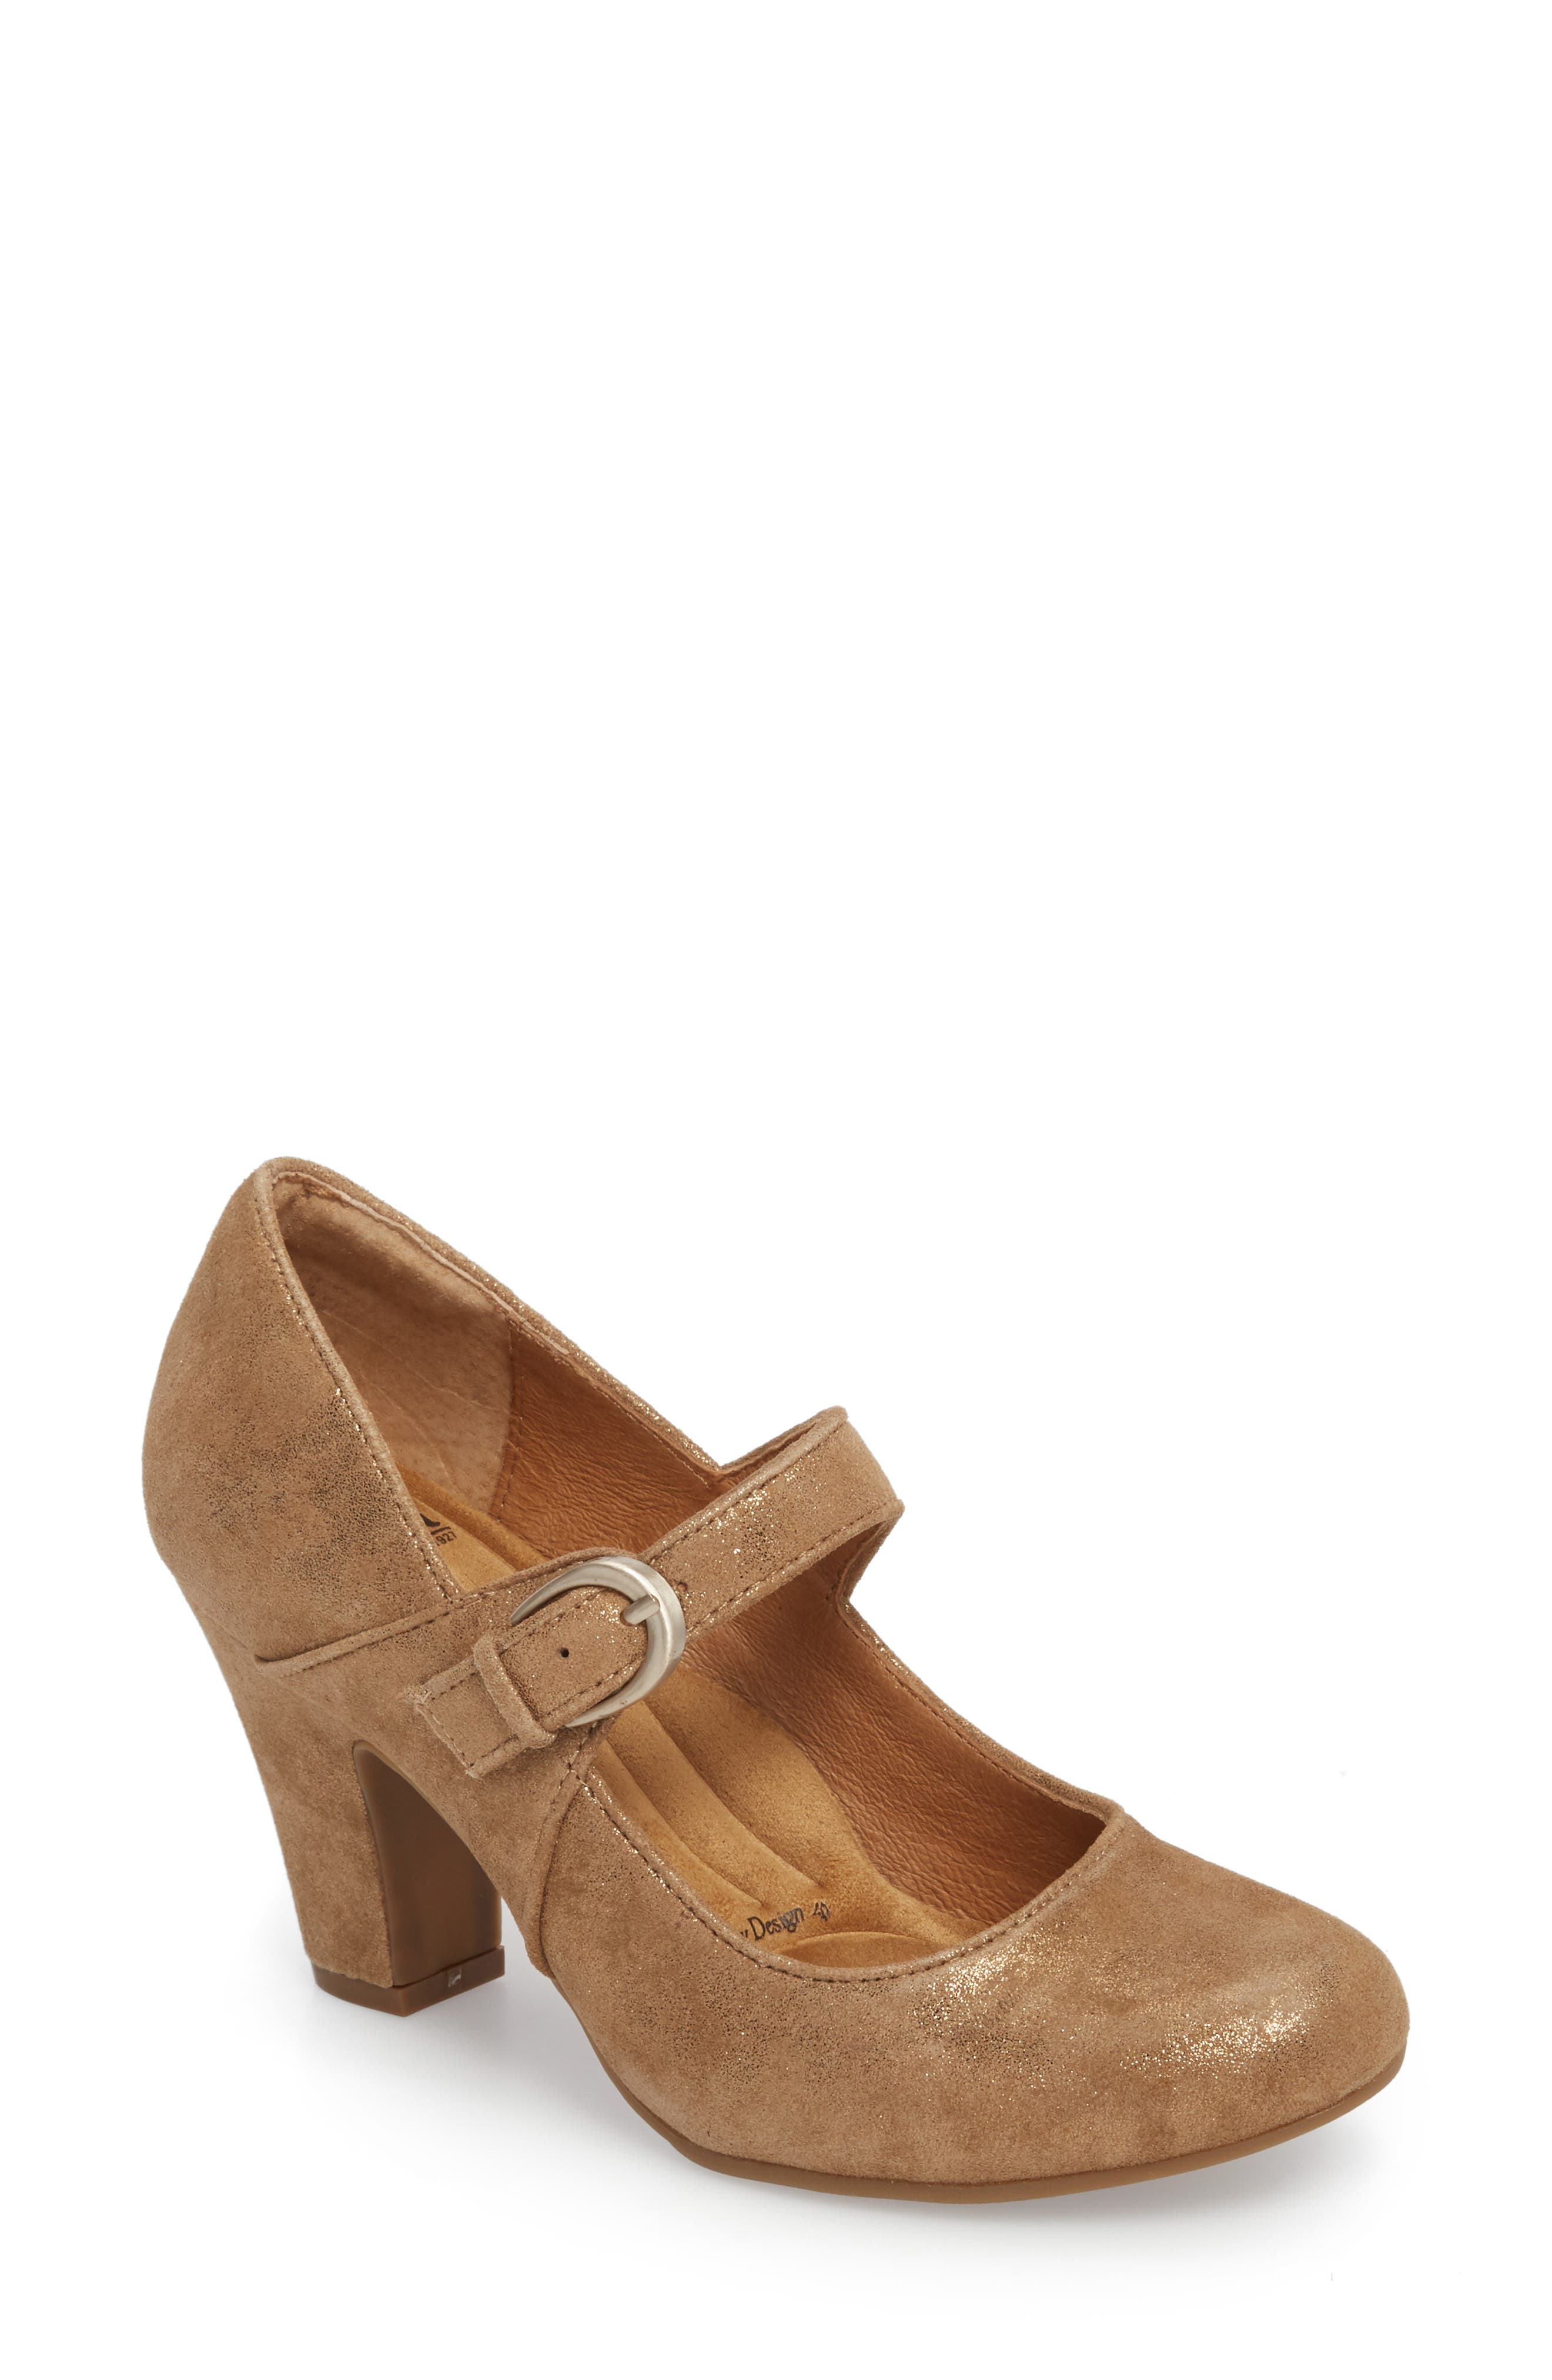 'Miranda' Mary Jane Pump,                         Main,                         color, Gold Distressed Foil Suede